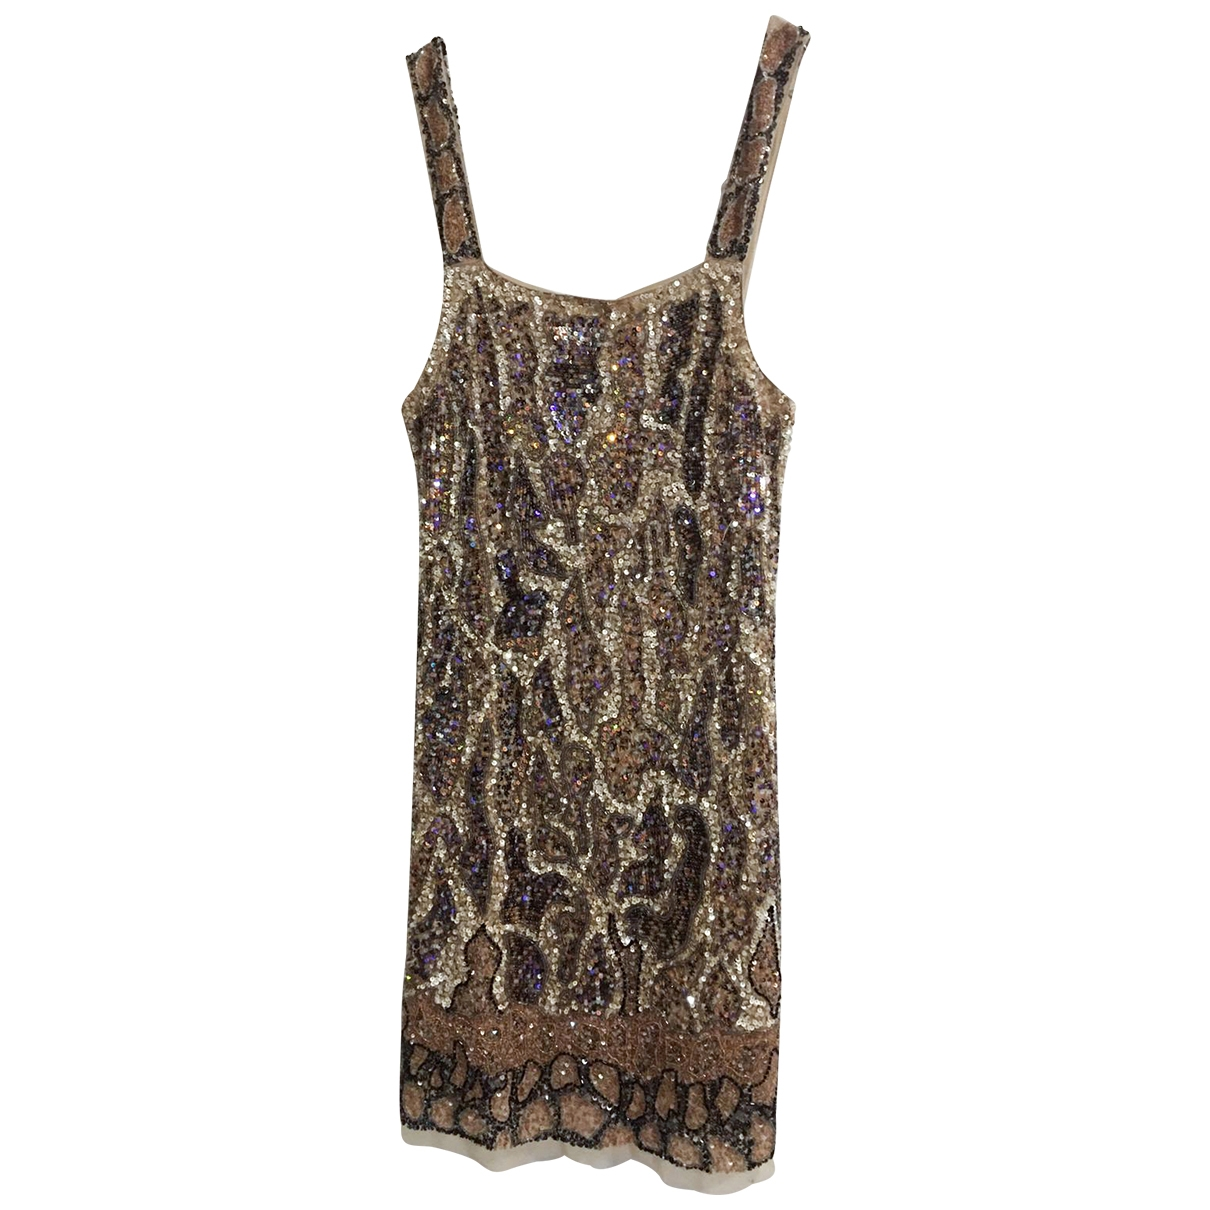 Zara \N Gold Glitter dress for Women 40 IT